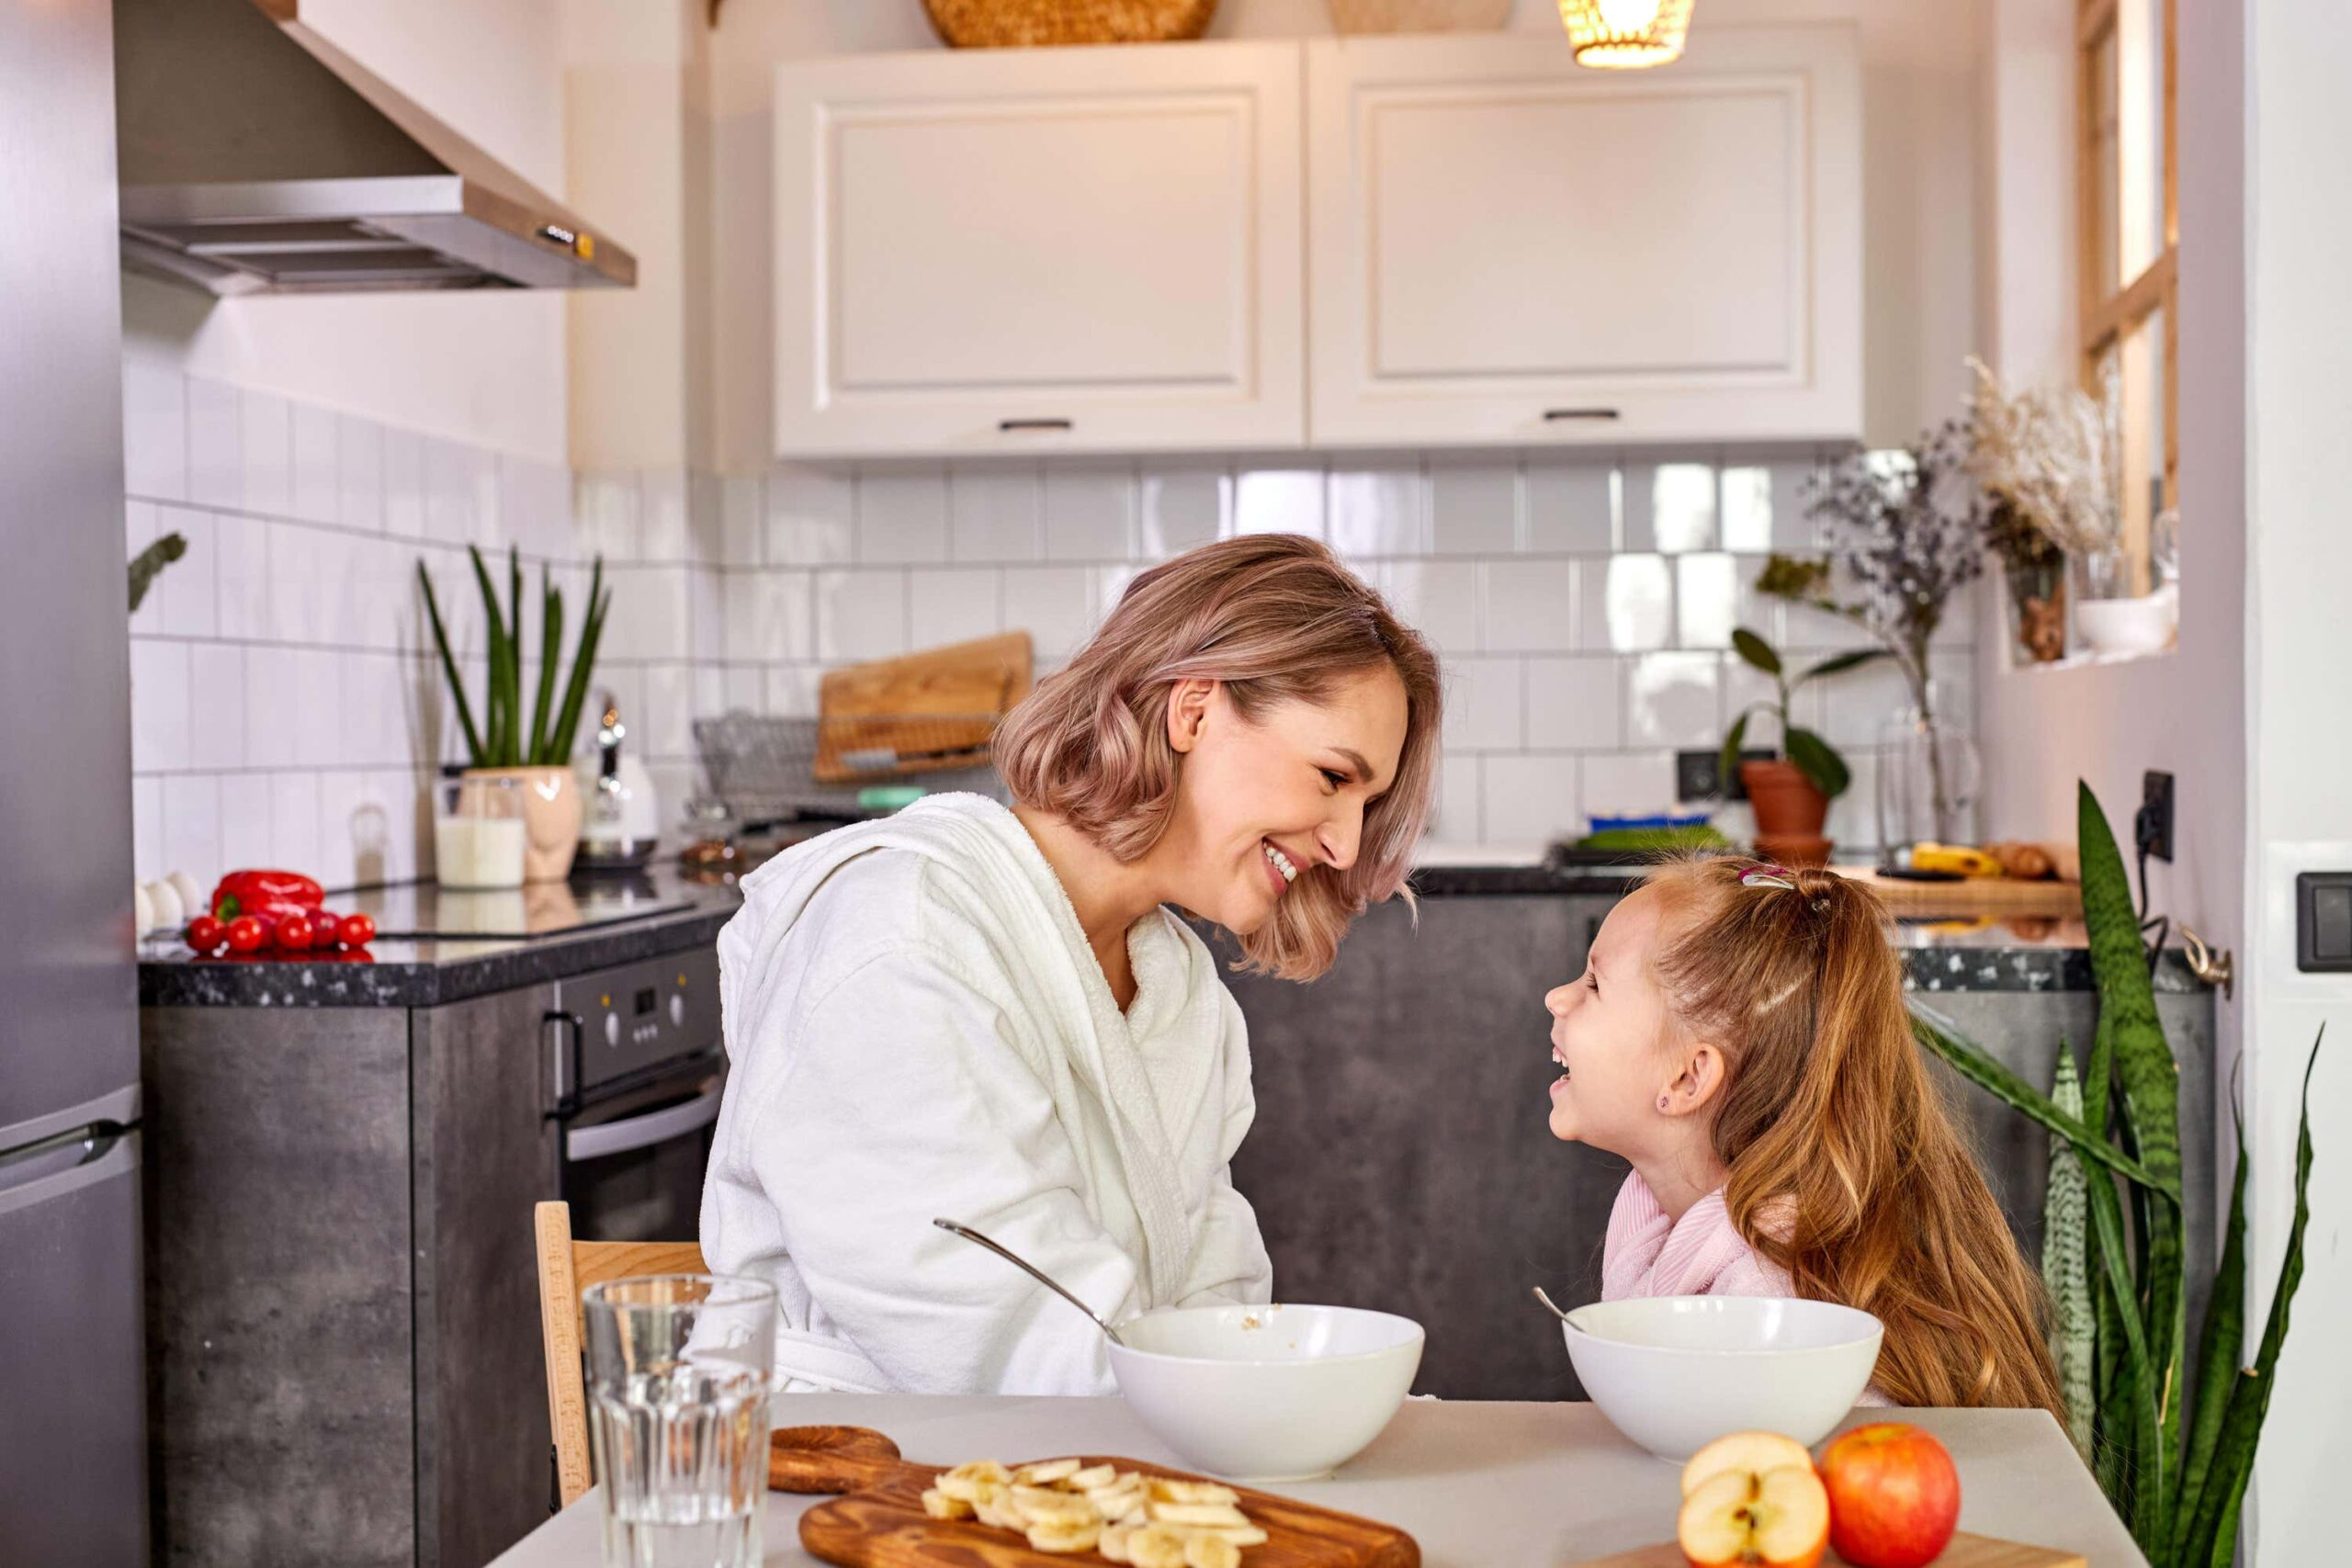 Best Healthy Breakfasts To Feed Your Children